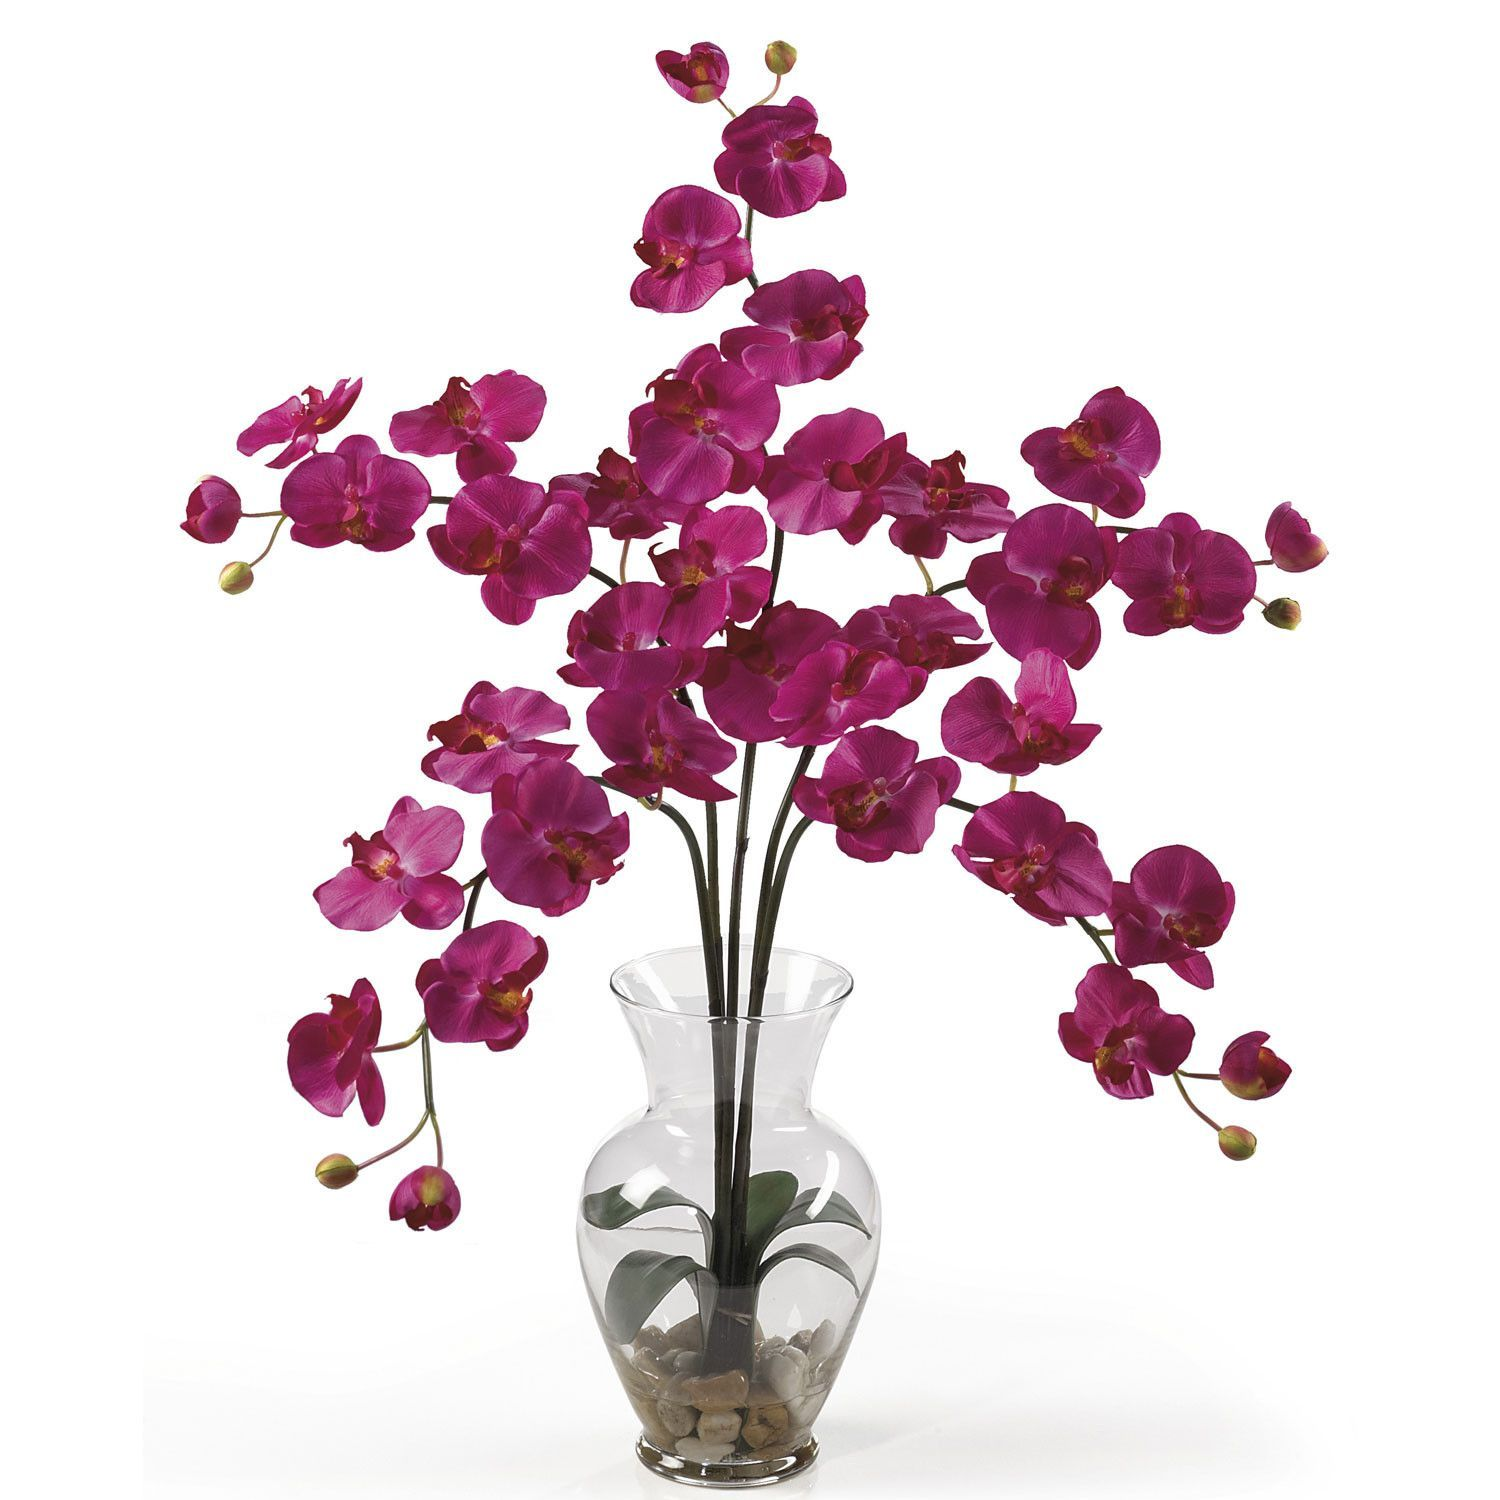 """Phalaenopsis Liquid Illusion Silk Flower Arrangement - Check out this stunning phalaenopsis orchid! Bursting with color and personality the Phalaenopsis is perhaps the most popular variety of all the orchids. Expertly arranged, this piece was designed to enhance any space. It comes in 8 outstanding colors: Beauty, cream, dark pink, green, gold, mauve, orchid, and white. Standing 31"""" tall, each plant comes stacked with five amazing phalaenopsis stems each with 6 flowers and 2 buds. Finished…"""